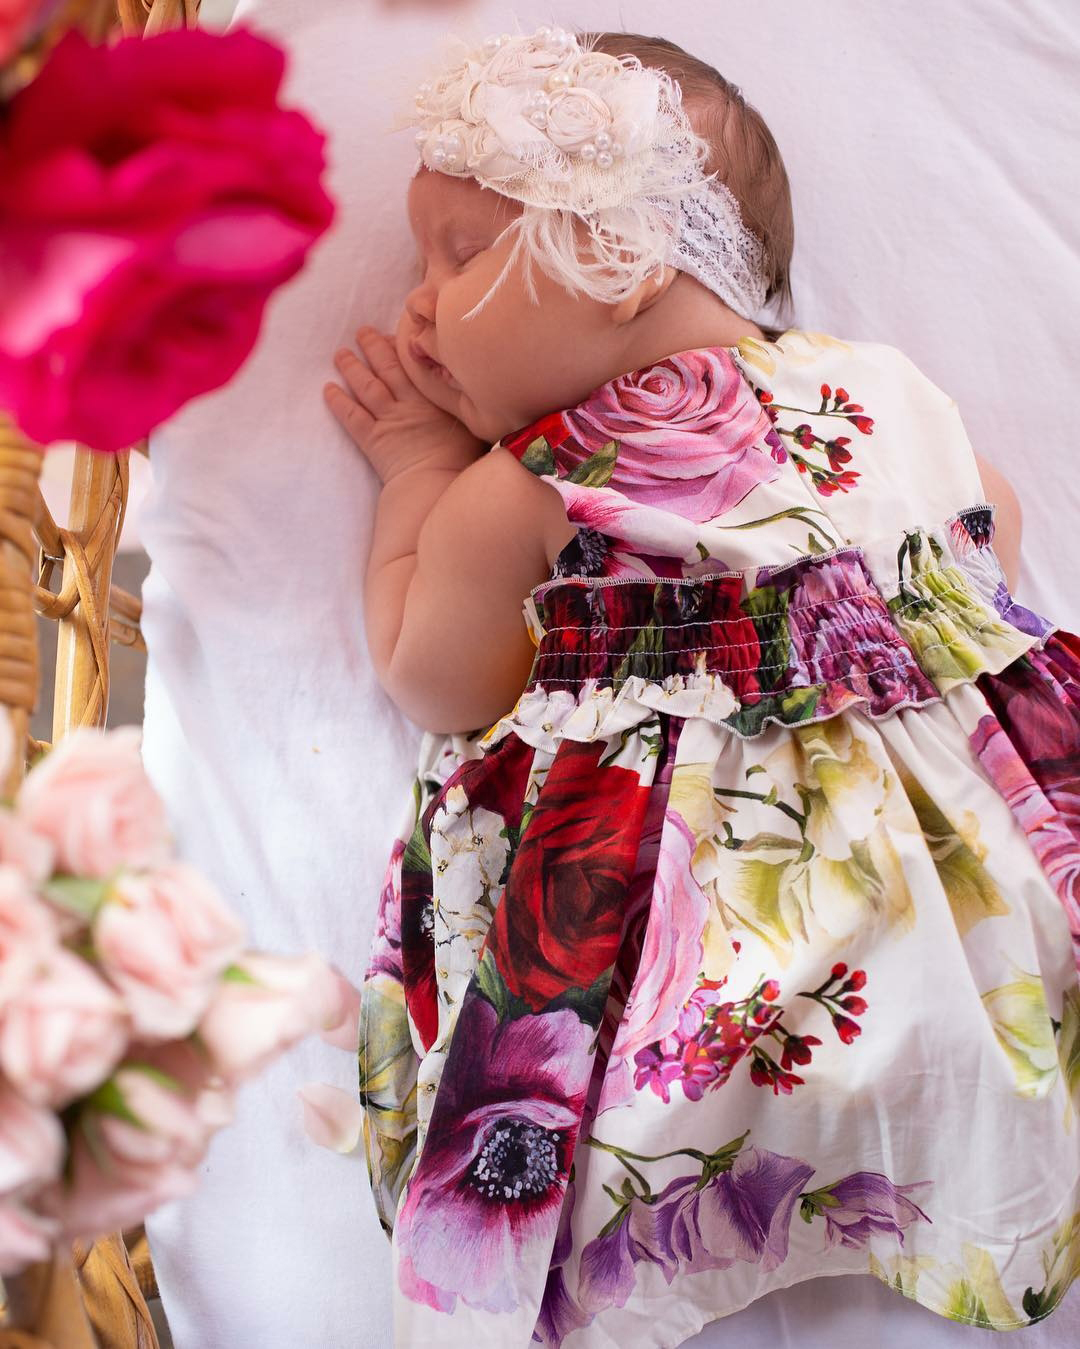 Easter Kids - Jessica Simpson 's 1-month-old daughter slept on Easter Sunday in a floral dress.